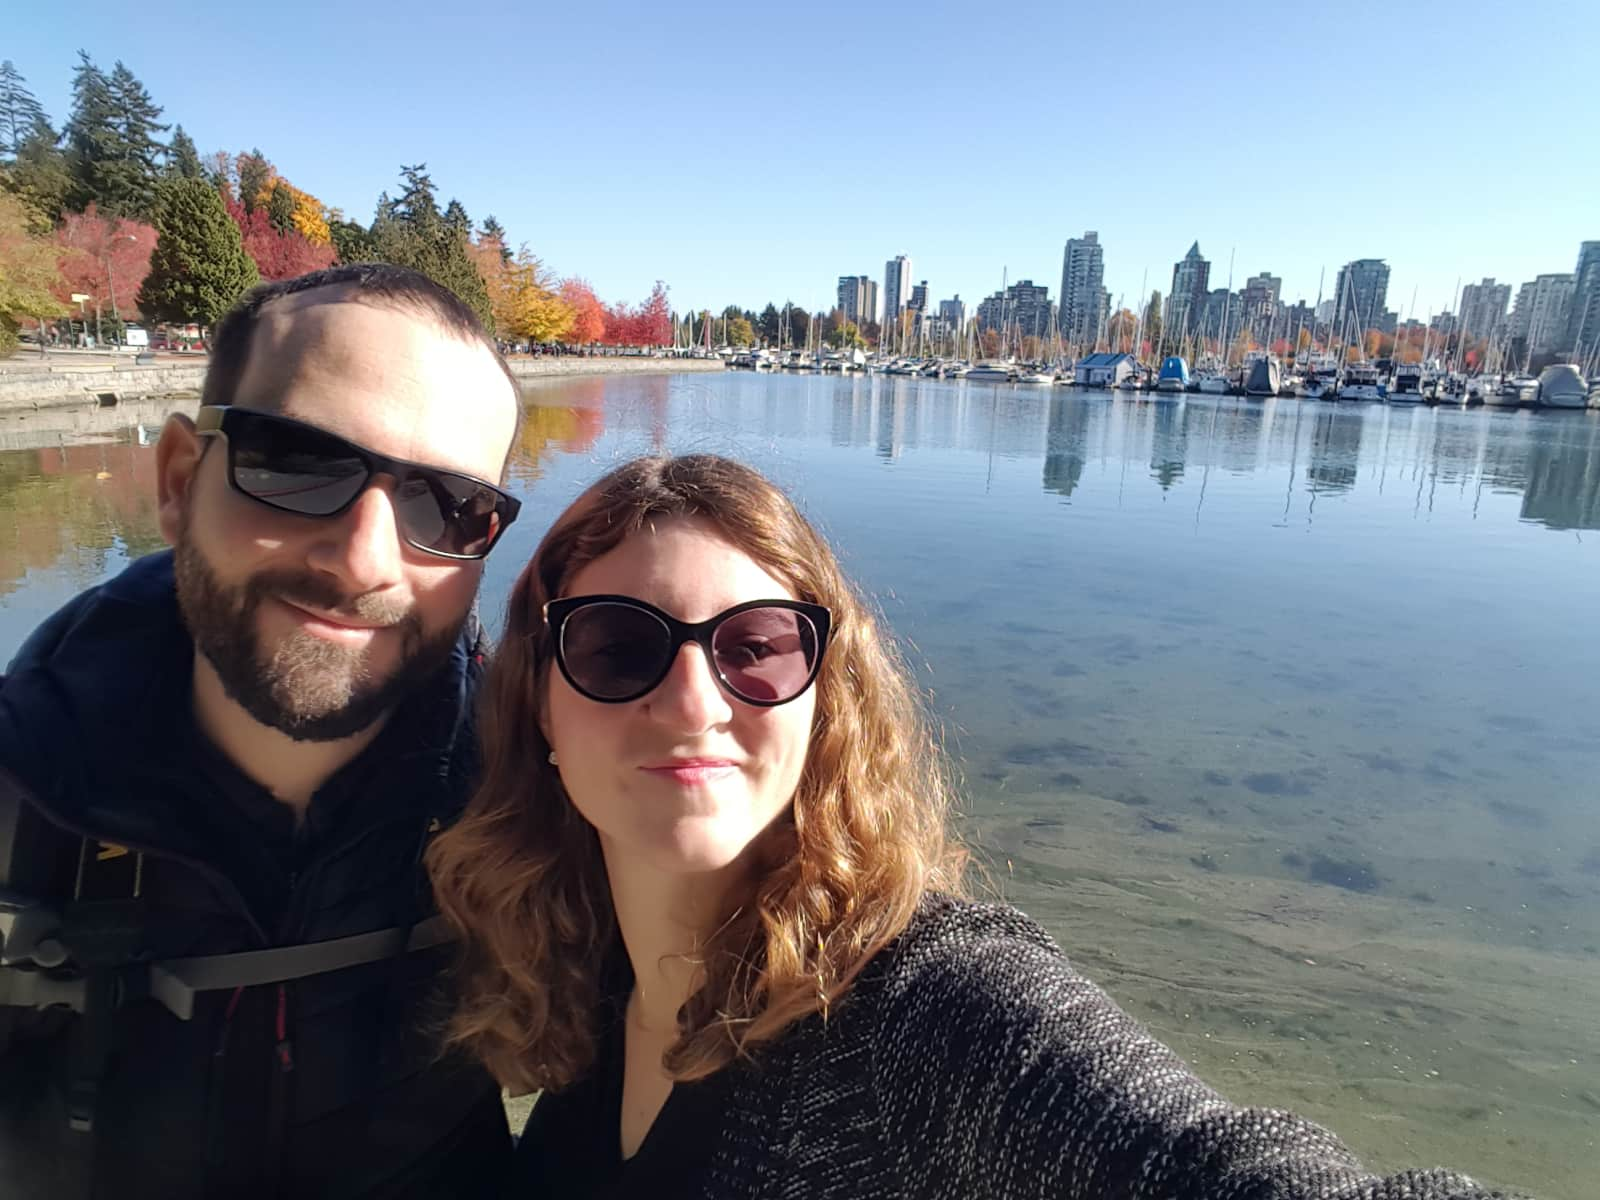 Audrey & Simon from Vancouver, British Columbia, Canada